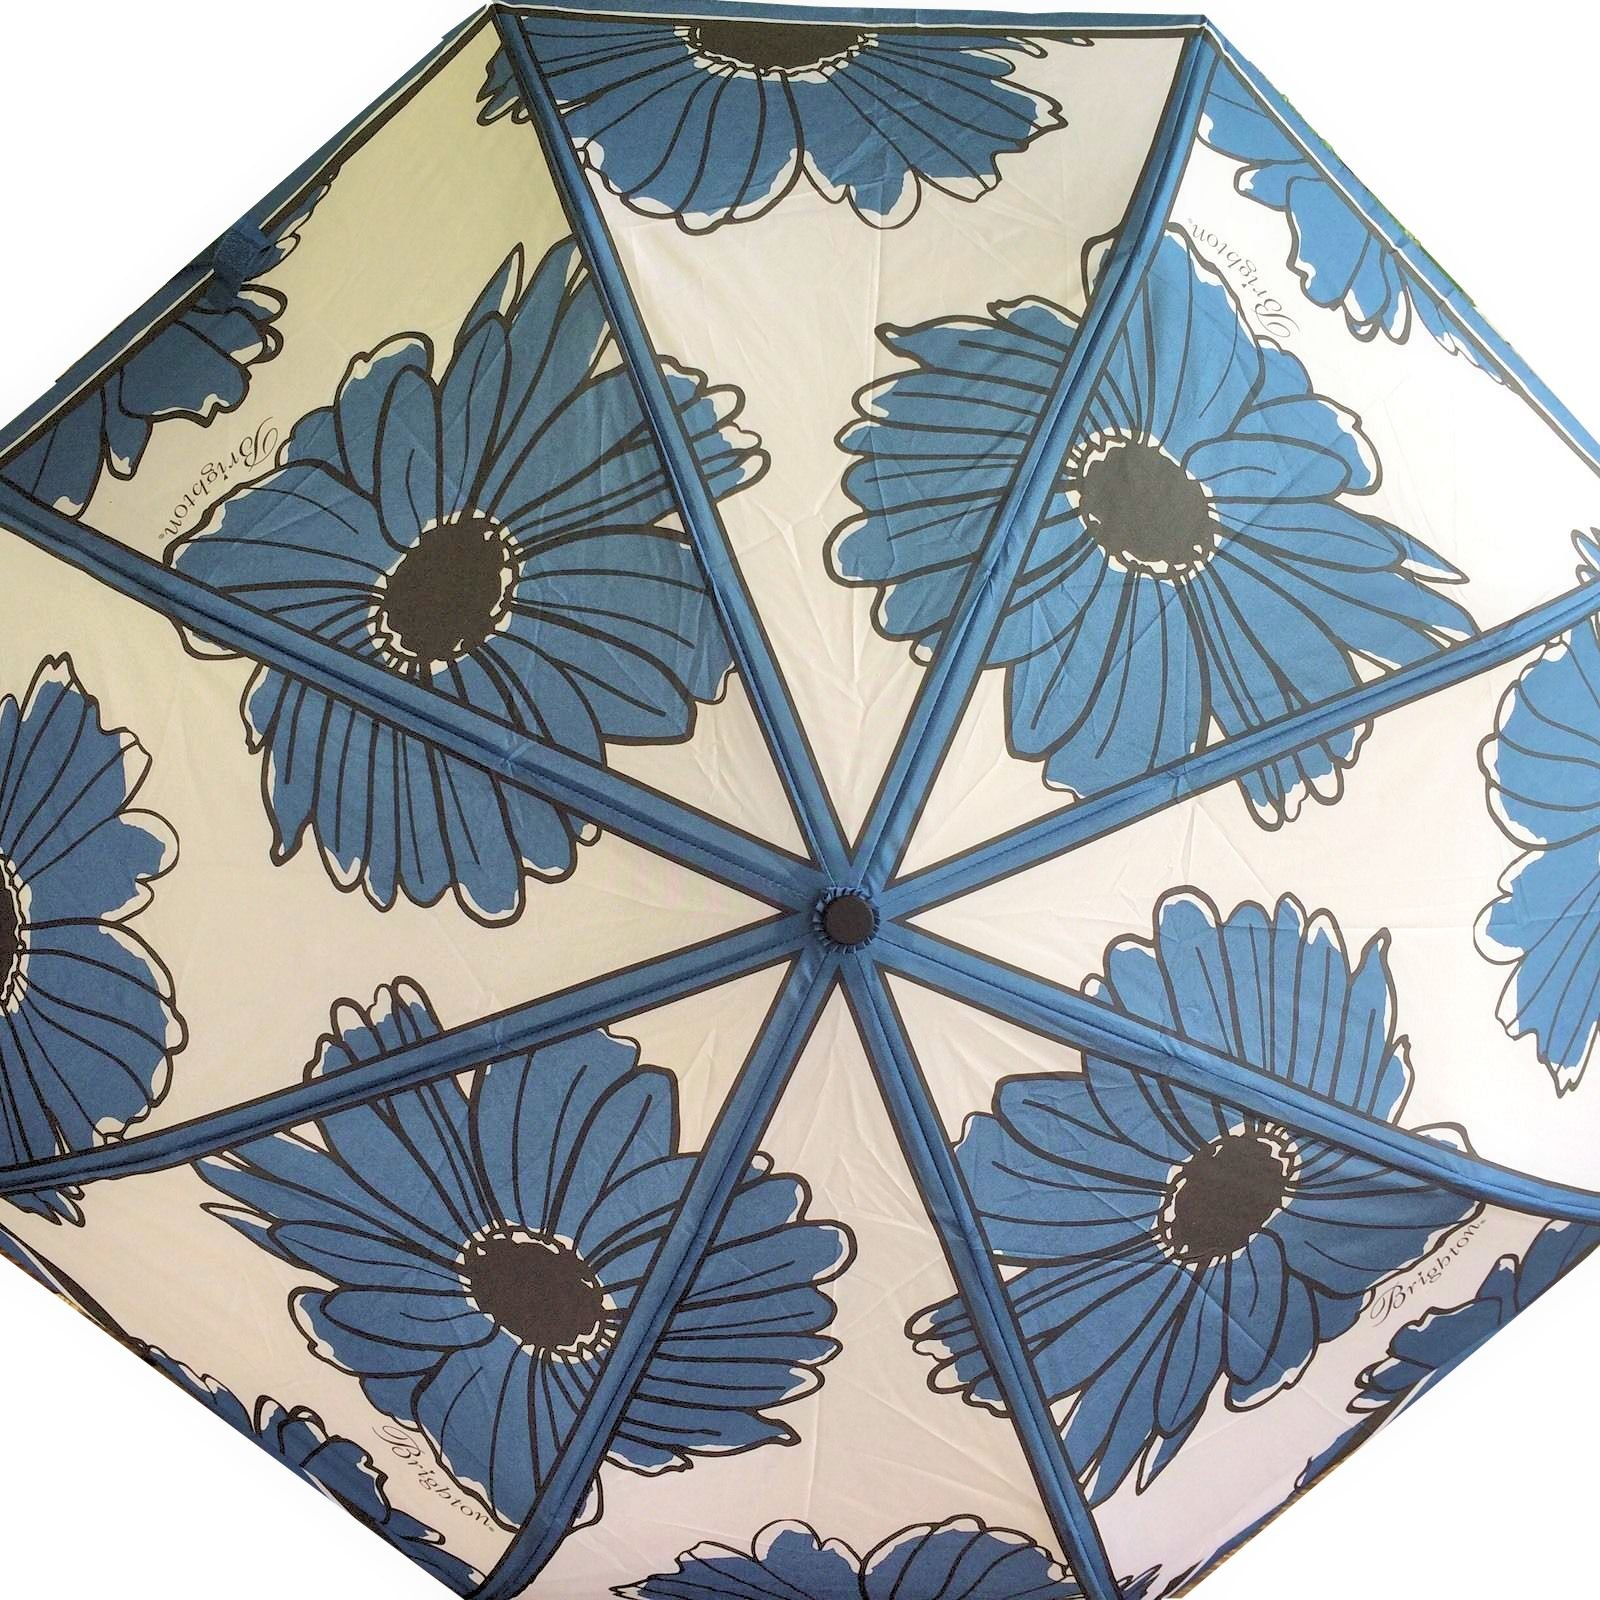 Brighton Showers of Flowers Blue 36 Pocket Compact Umbrella